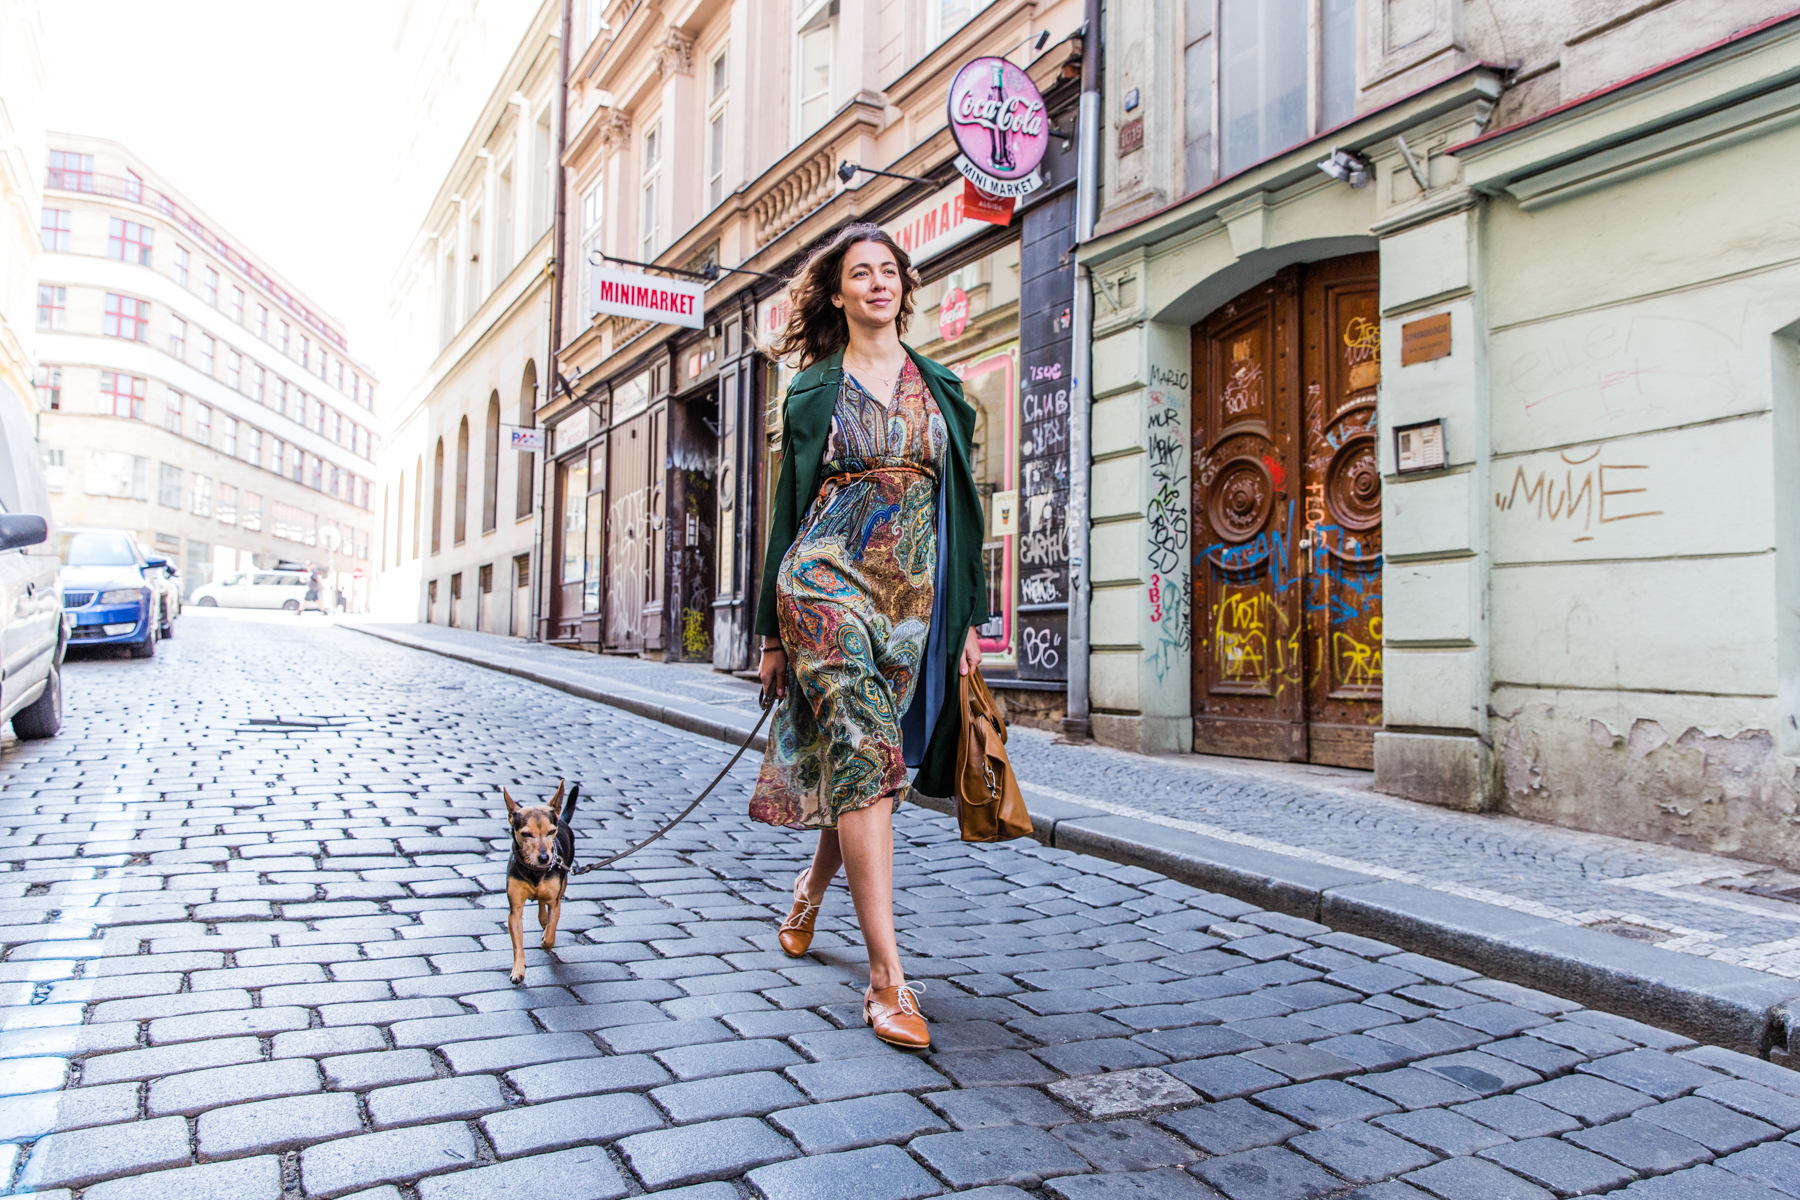 Woman Walking Down Cobble Streets with Dog